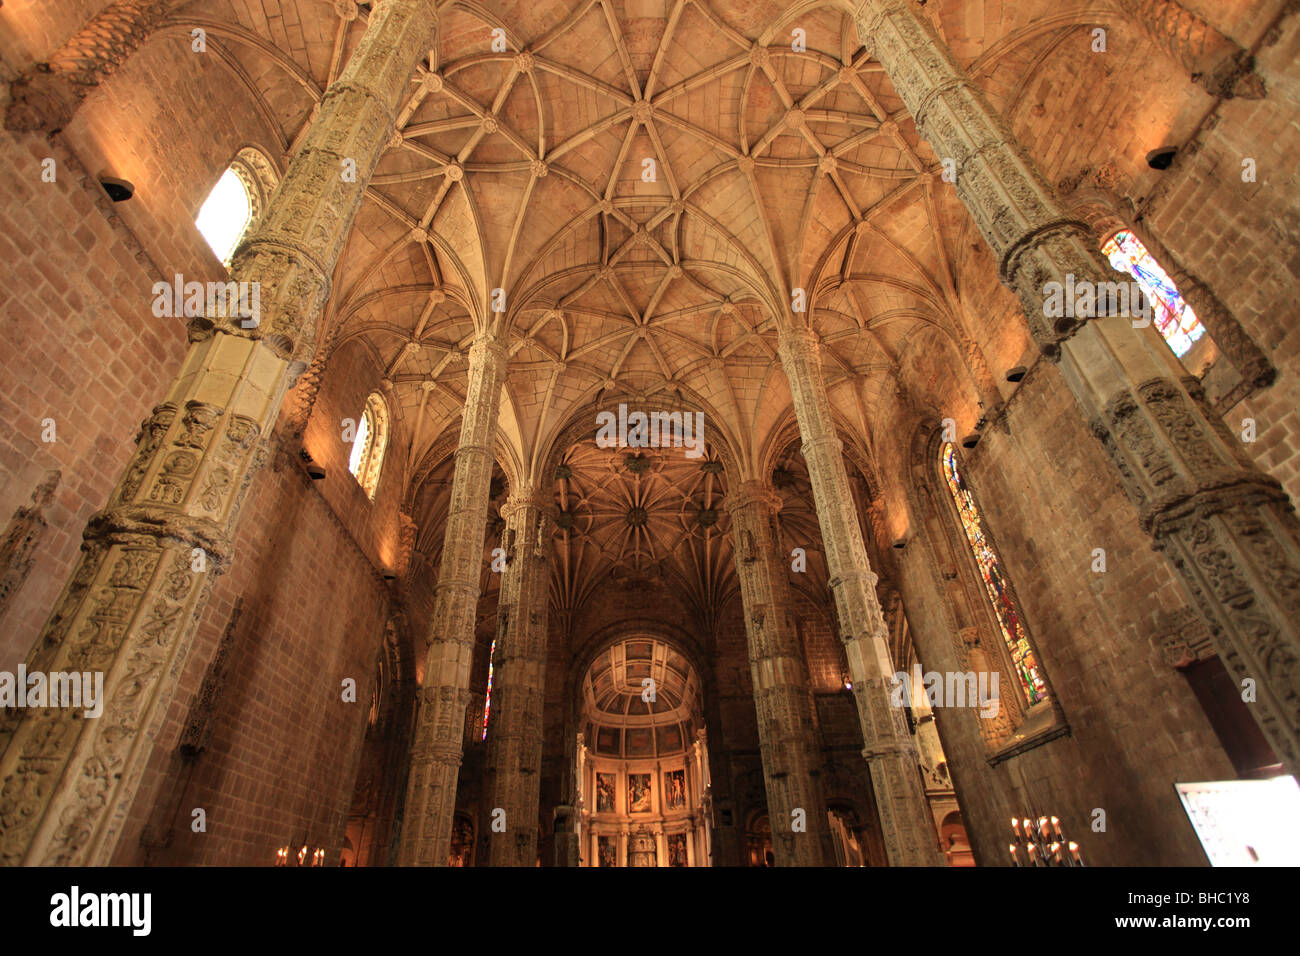 The interior of the monastery of Jeronimos dated between the 15th and 16th century is a UNESCO patrimony building Stock Photo